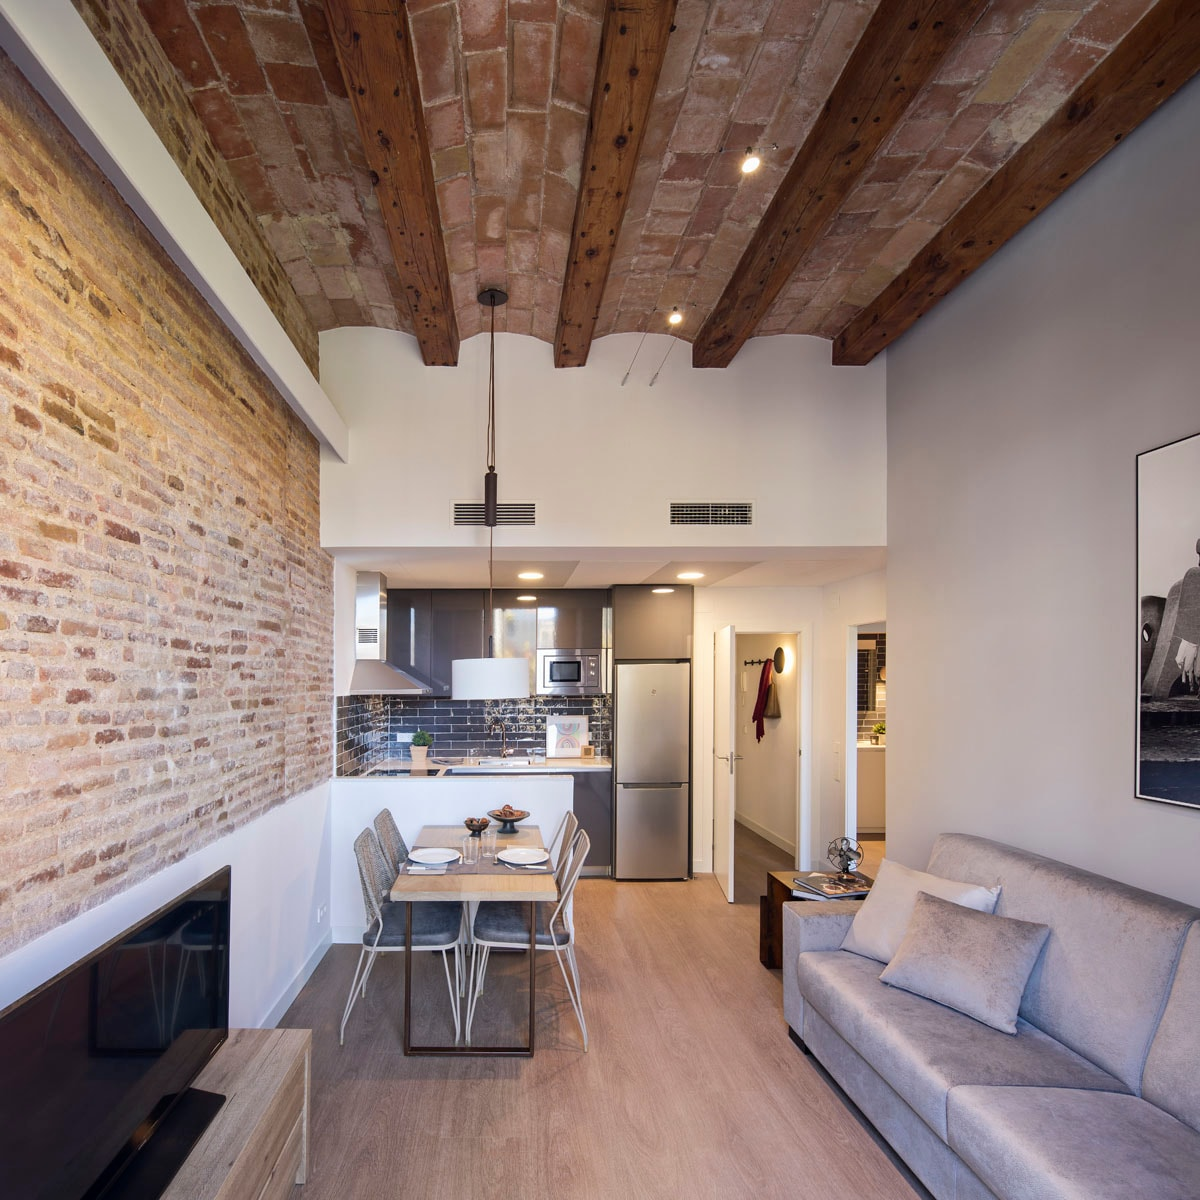 Property Image 1 - Wonderful City Centre Two Bedroom Apartment in Eixample